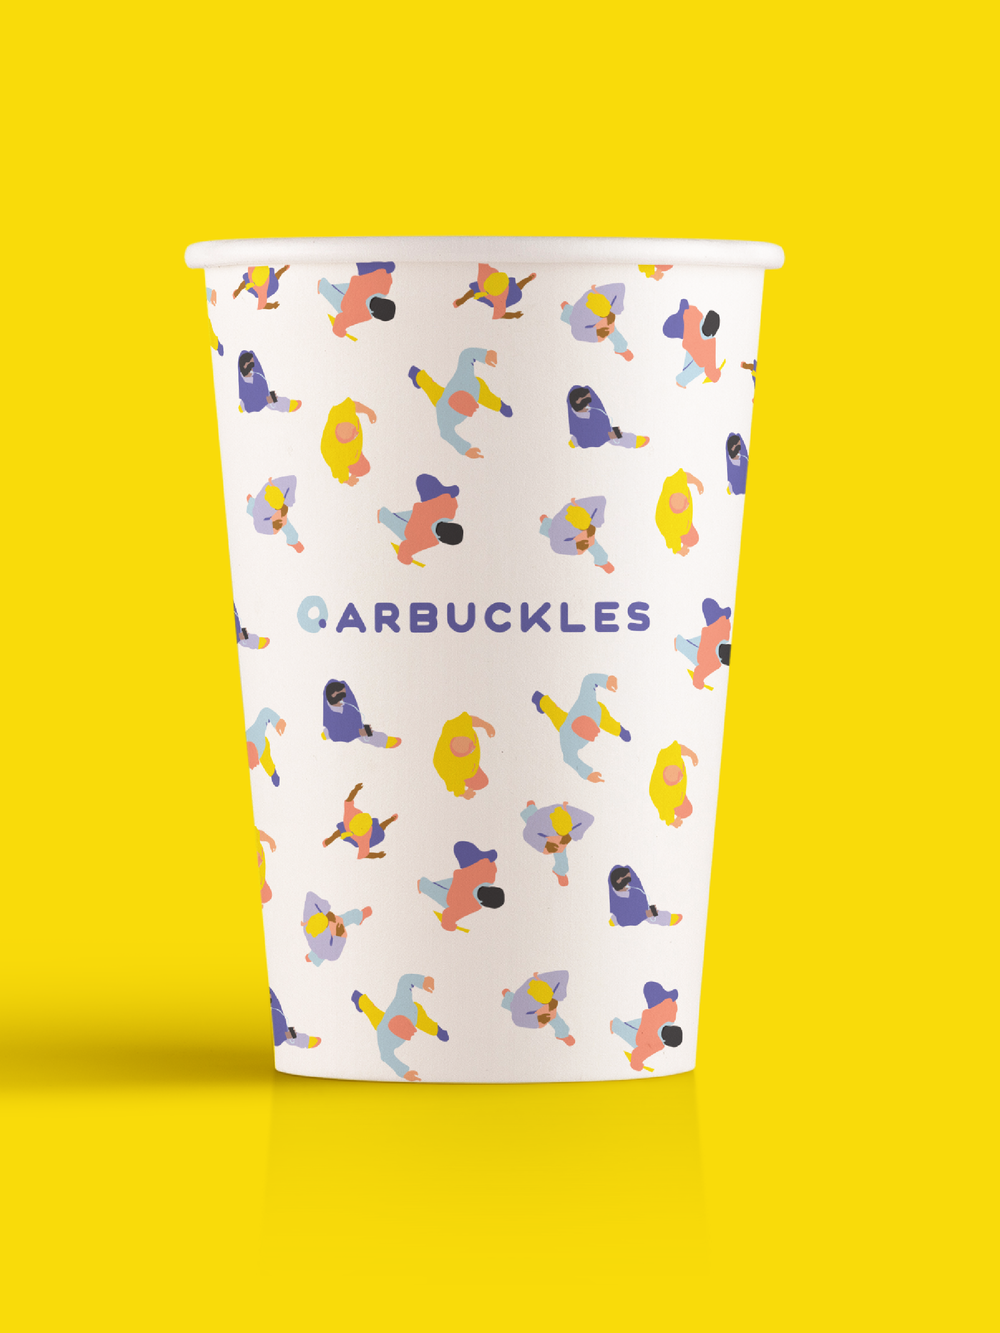 Arbuckles_CaseStudy-09.png